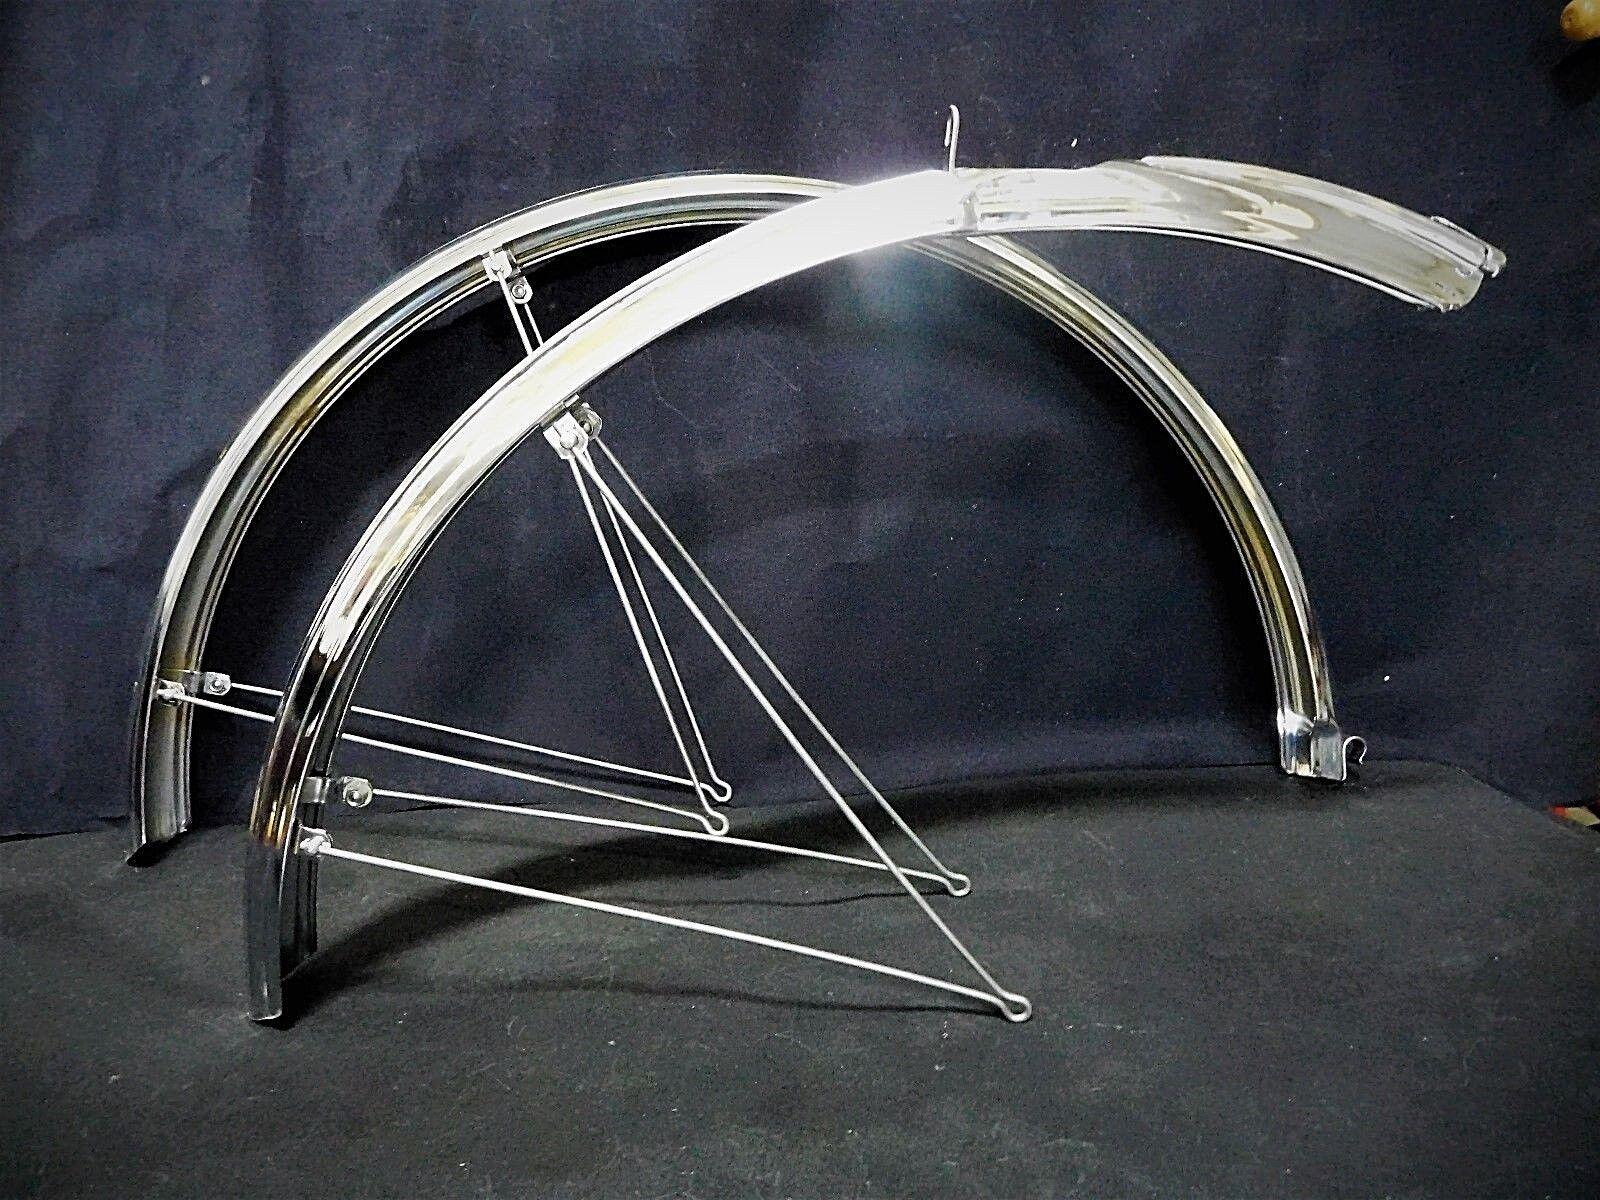 Vintage RALEIGH 26  mudguards Bicycle fenders  Chromium pair NOS Made in England  factory outlets